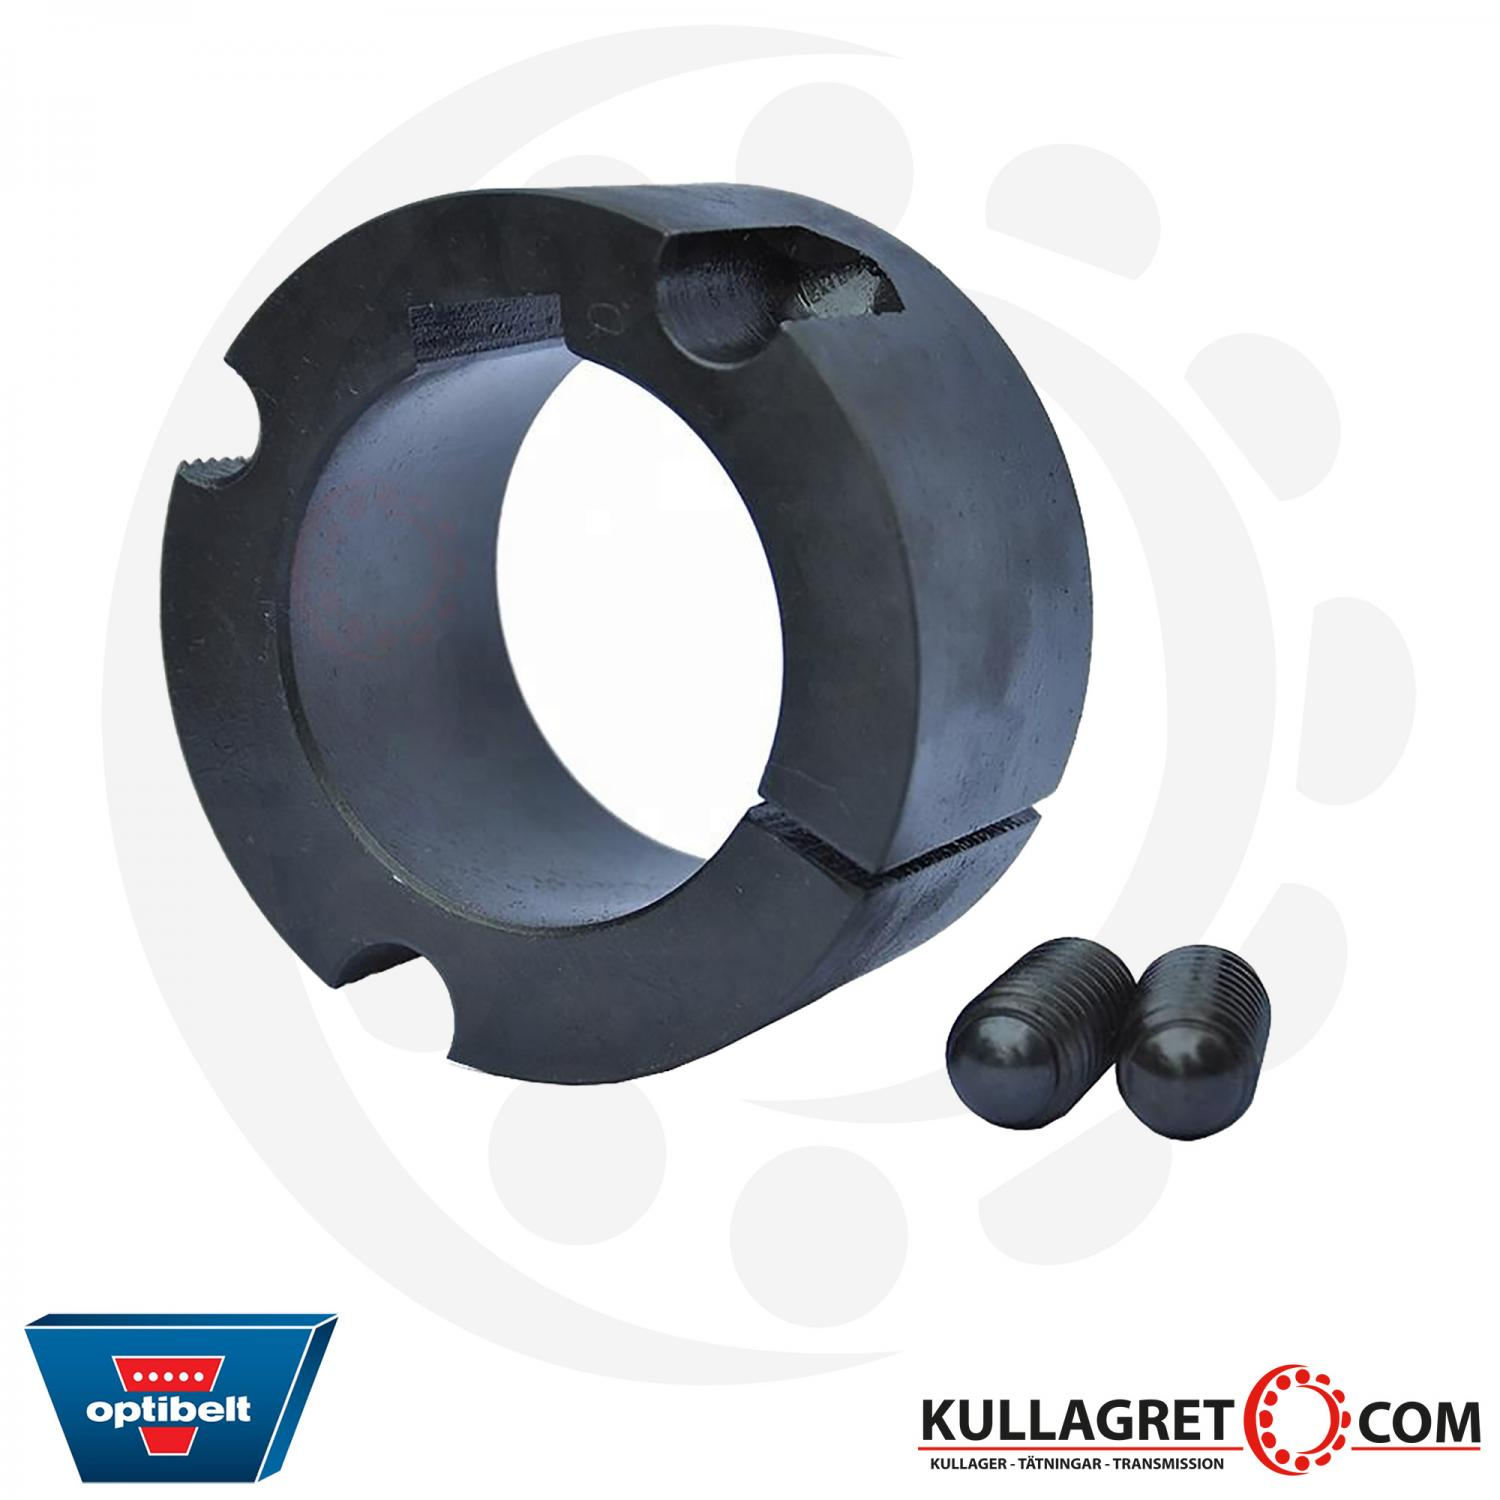 Ø14mm / 2012-14 / Klämbussning Optibelt